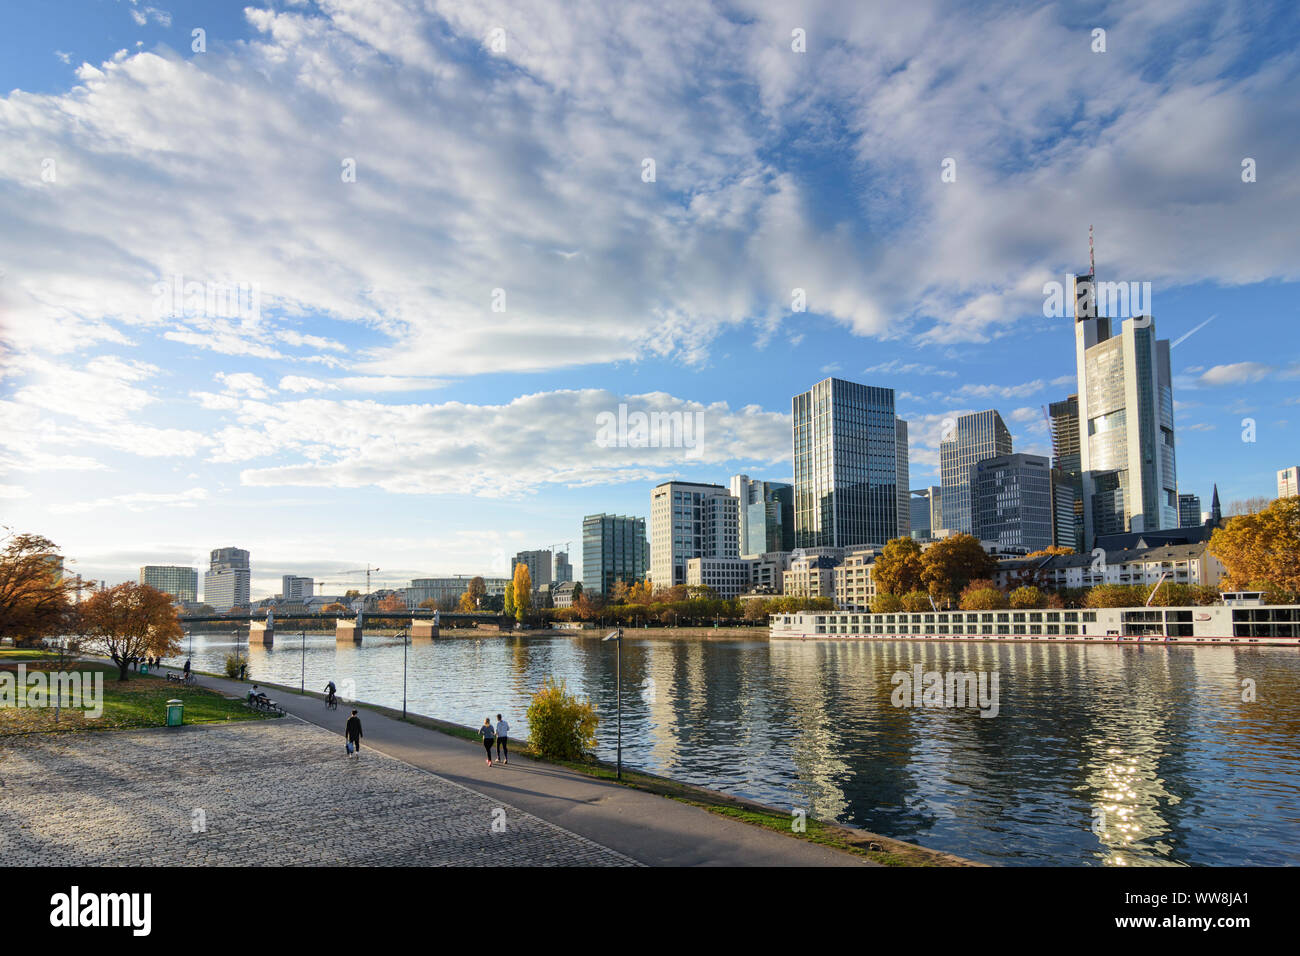 Frankfurt am Main, river Main, skyscrapers and high-rise office buildings in financial district, Commerzbank Tower, cruise ship, Hessen (Hesse), Germany Stock Photo